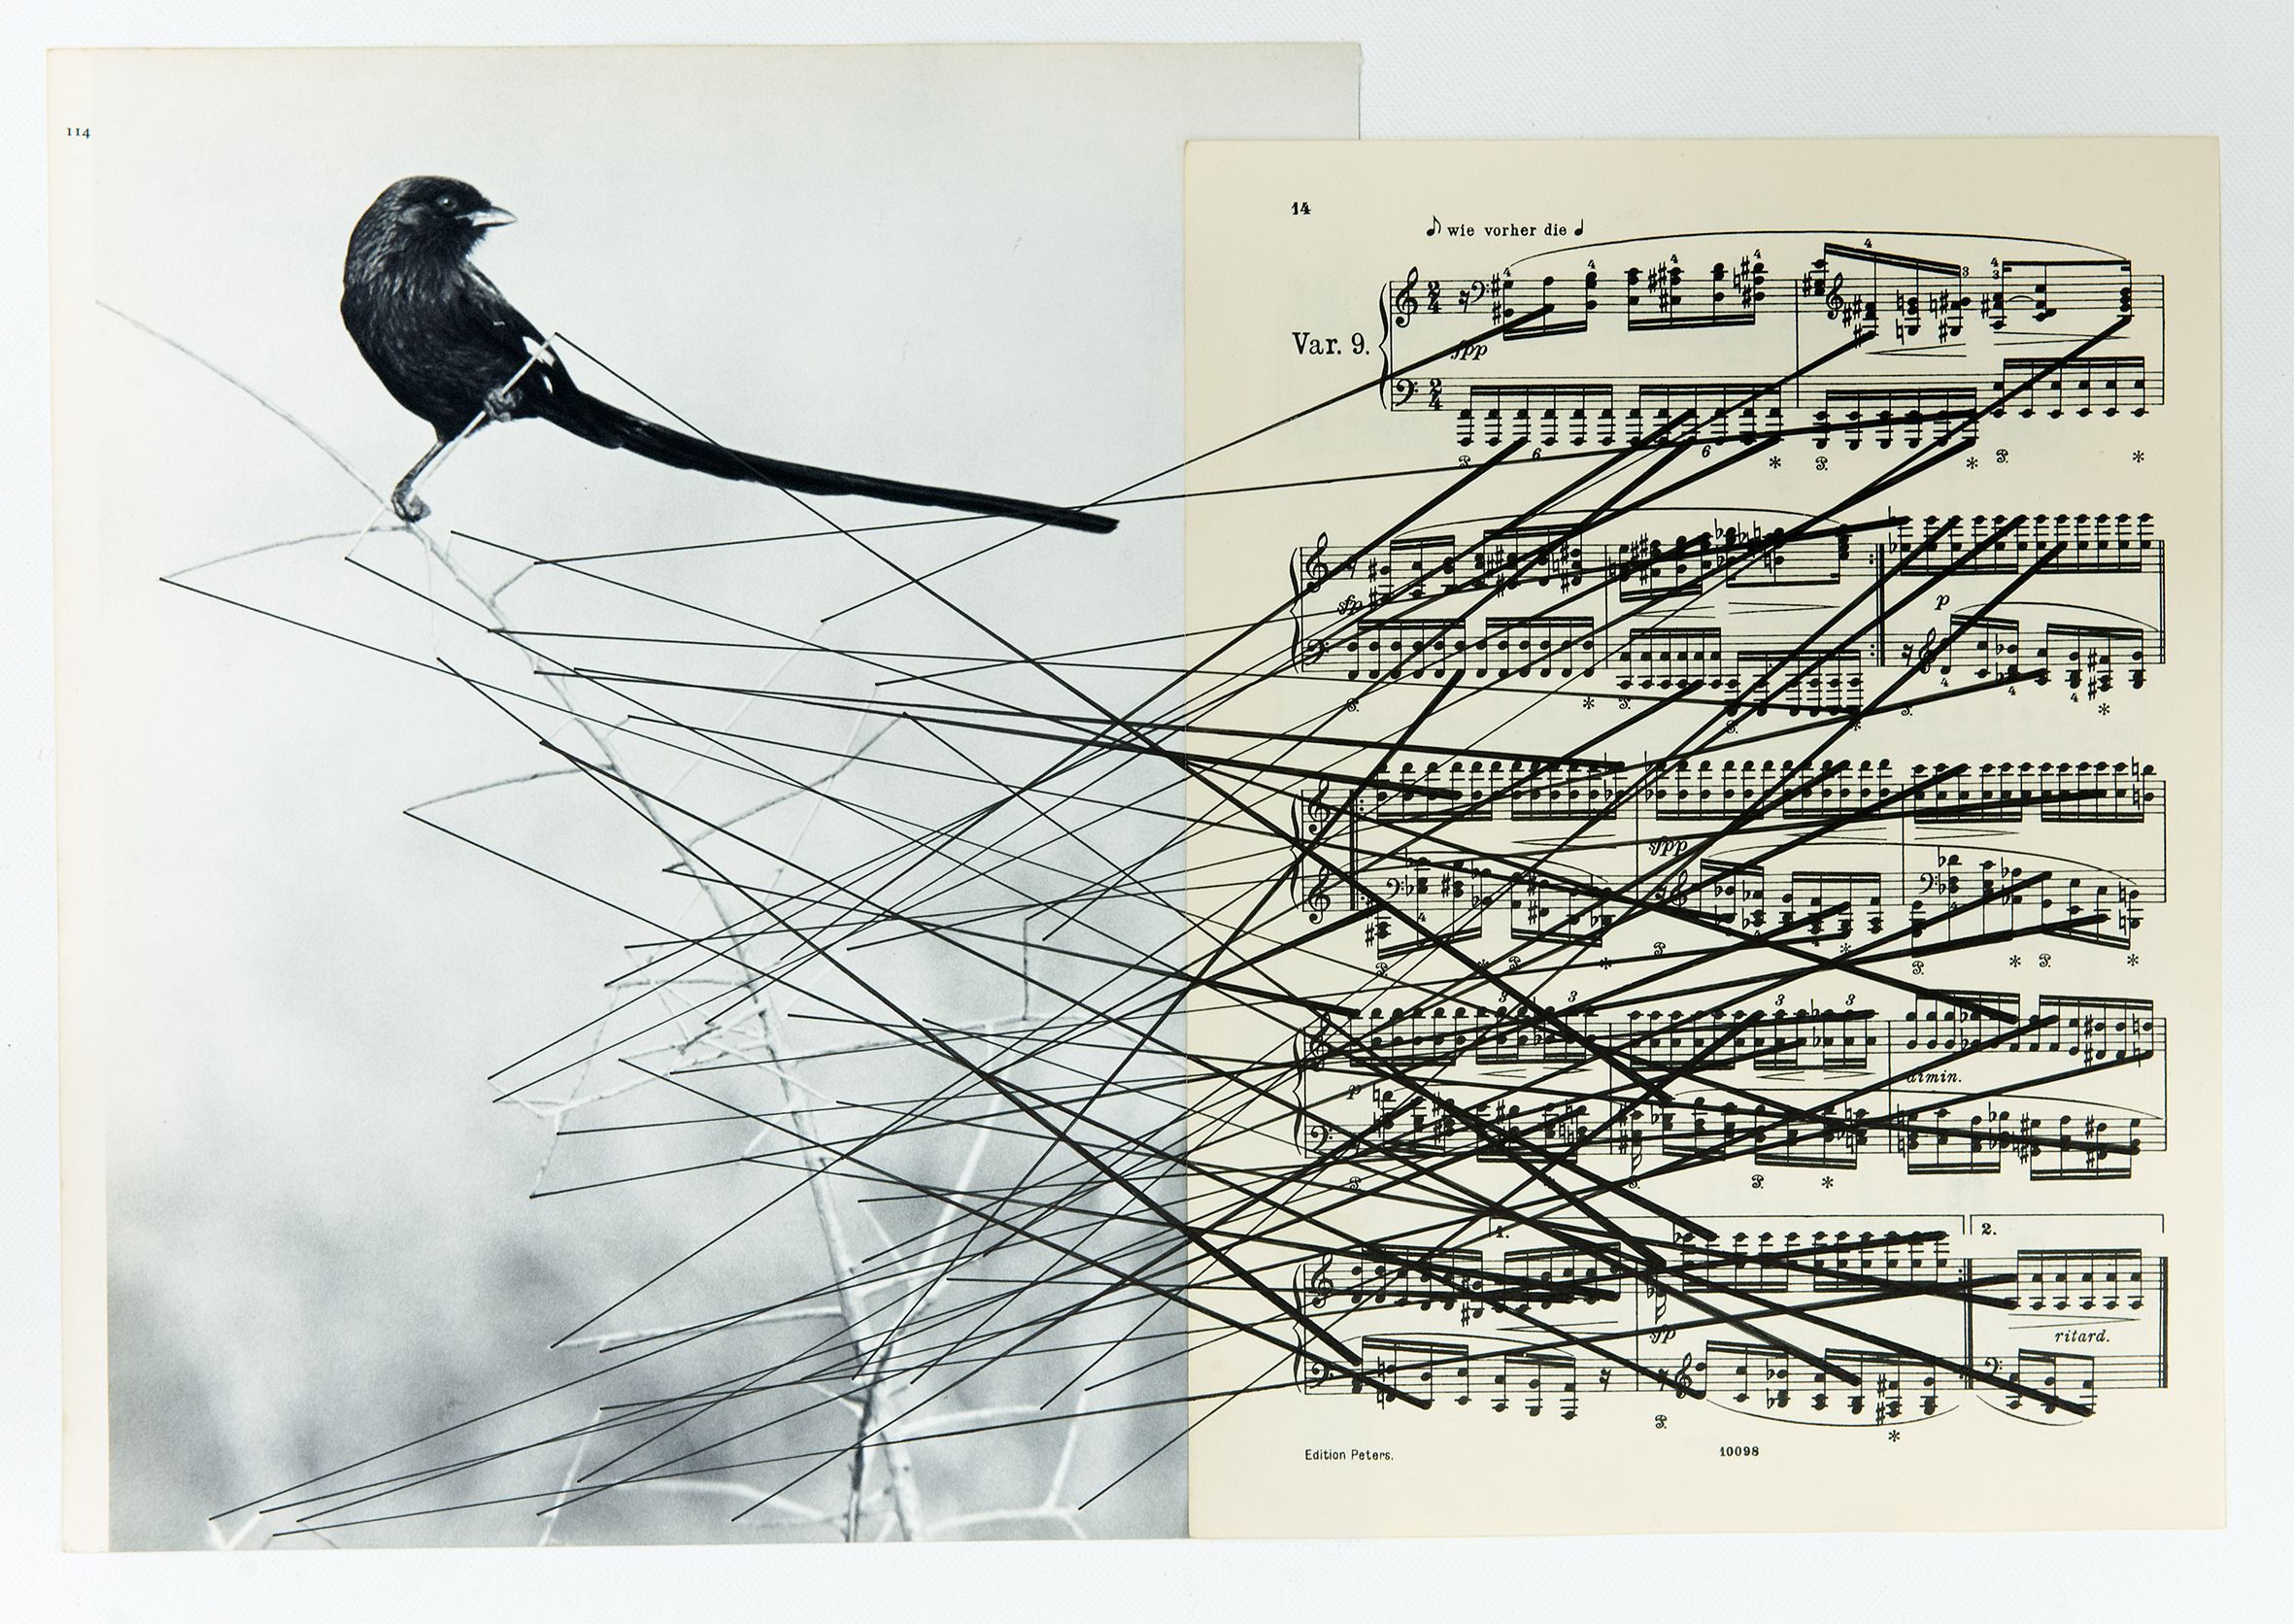 Bird, 2014, Sheet music paper,found photograph, ink